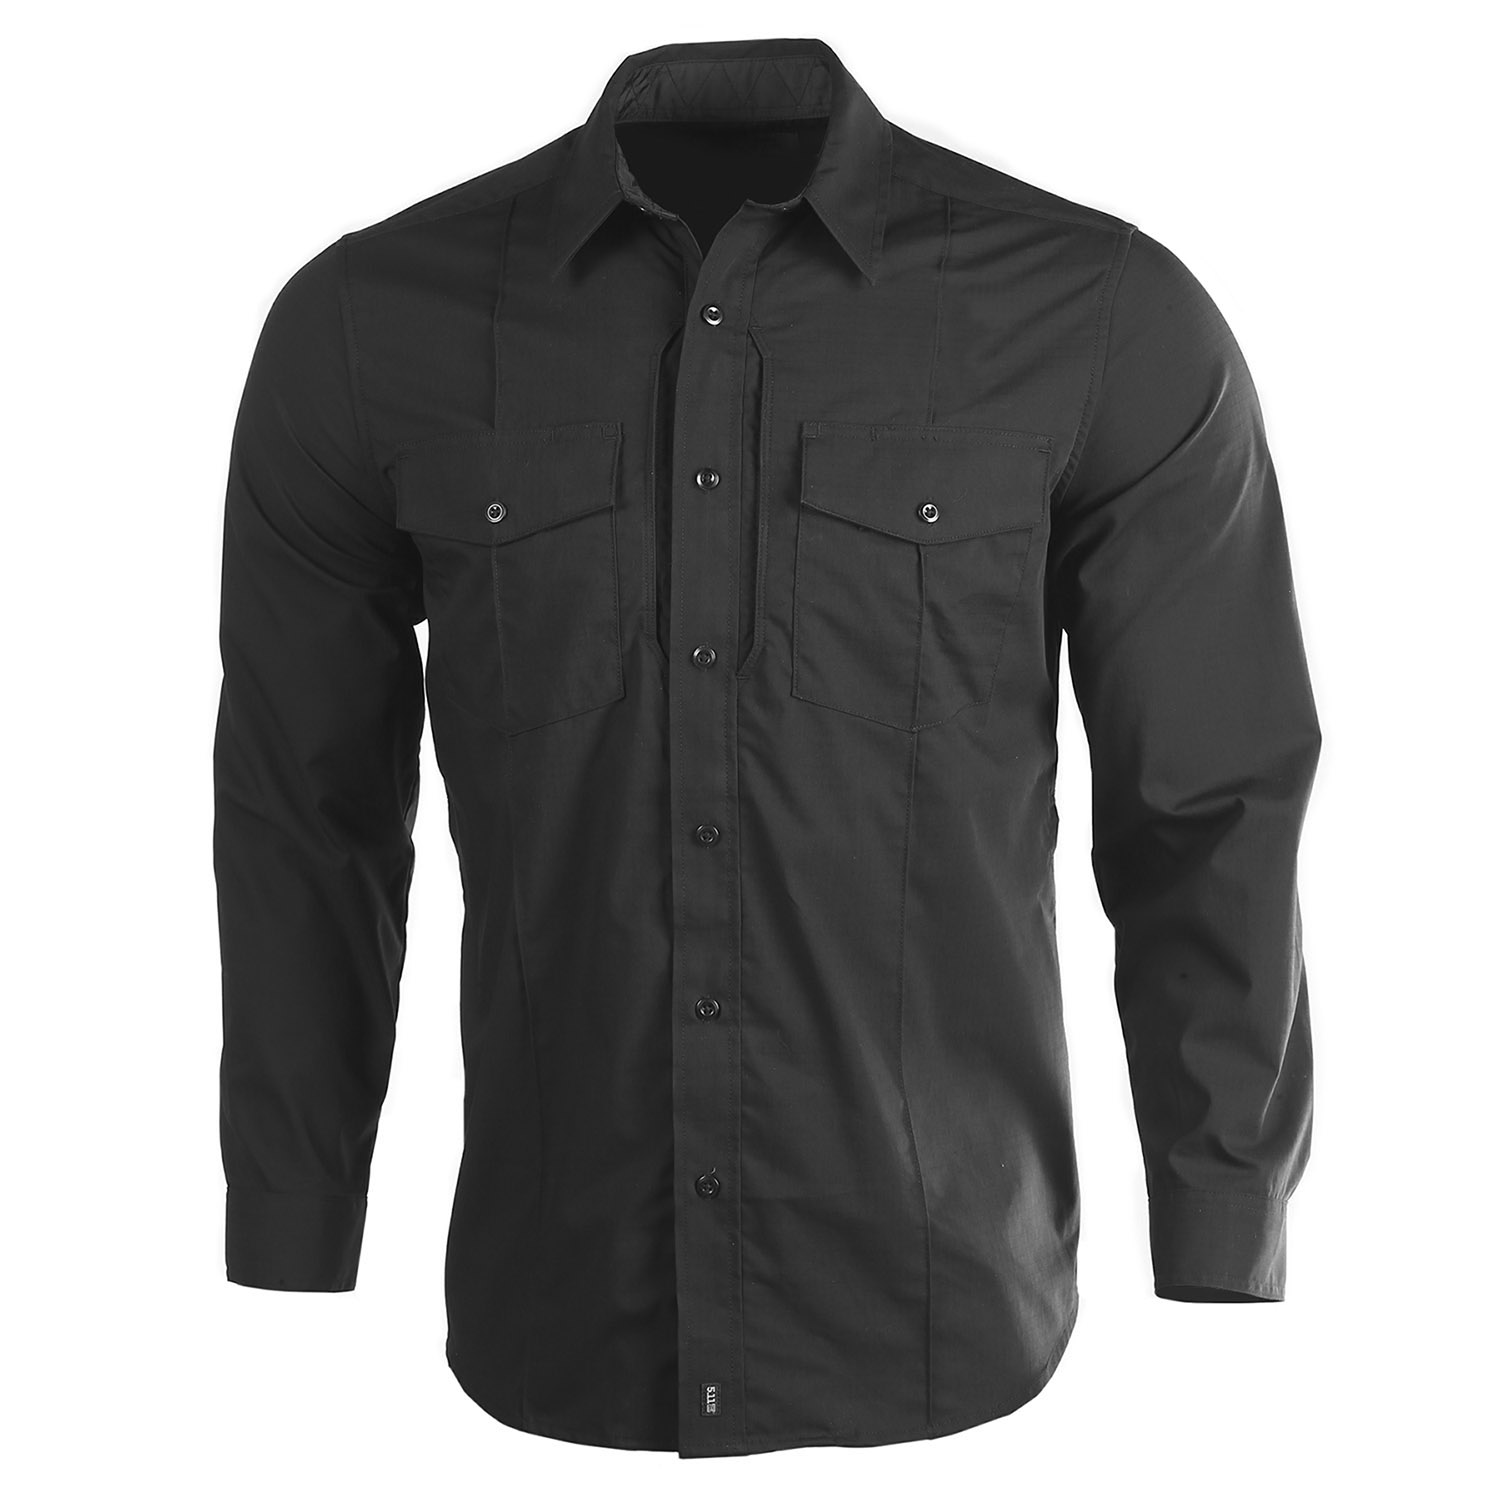 5.11 Tactical Women's Long Sleeve Class B Stryke PDU Shirt